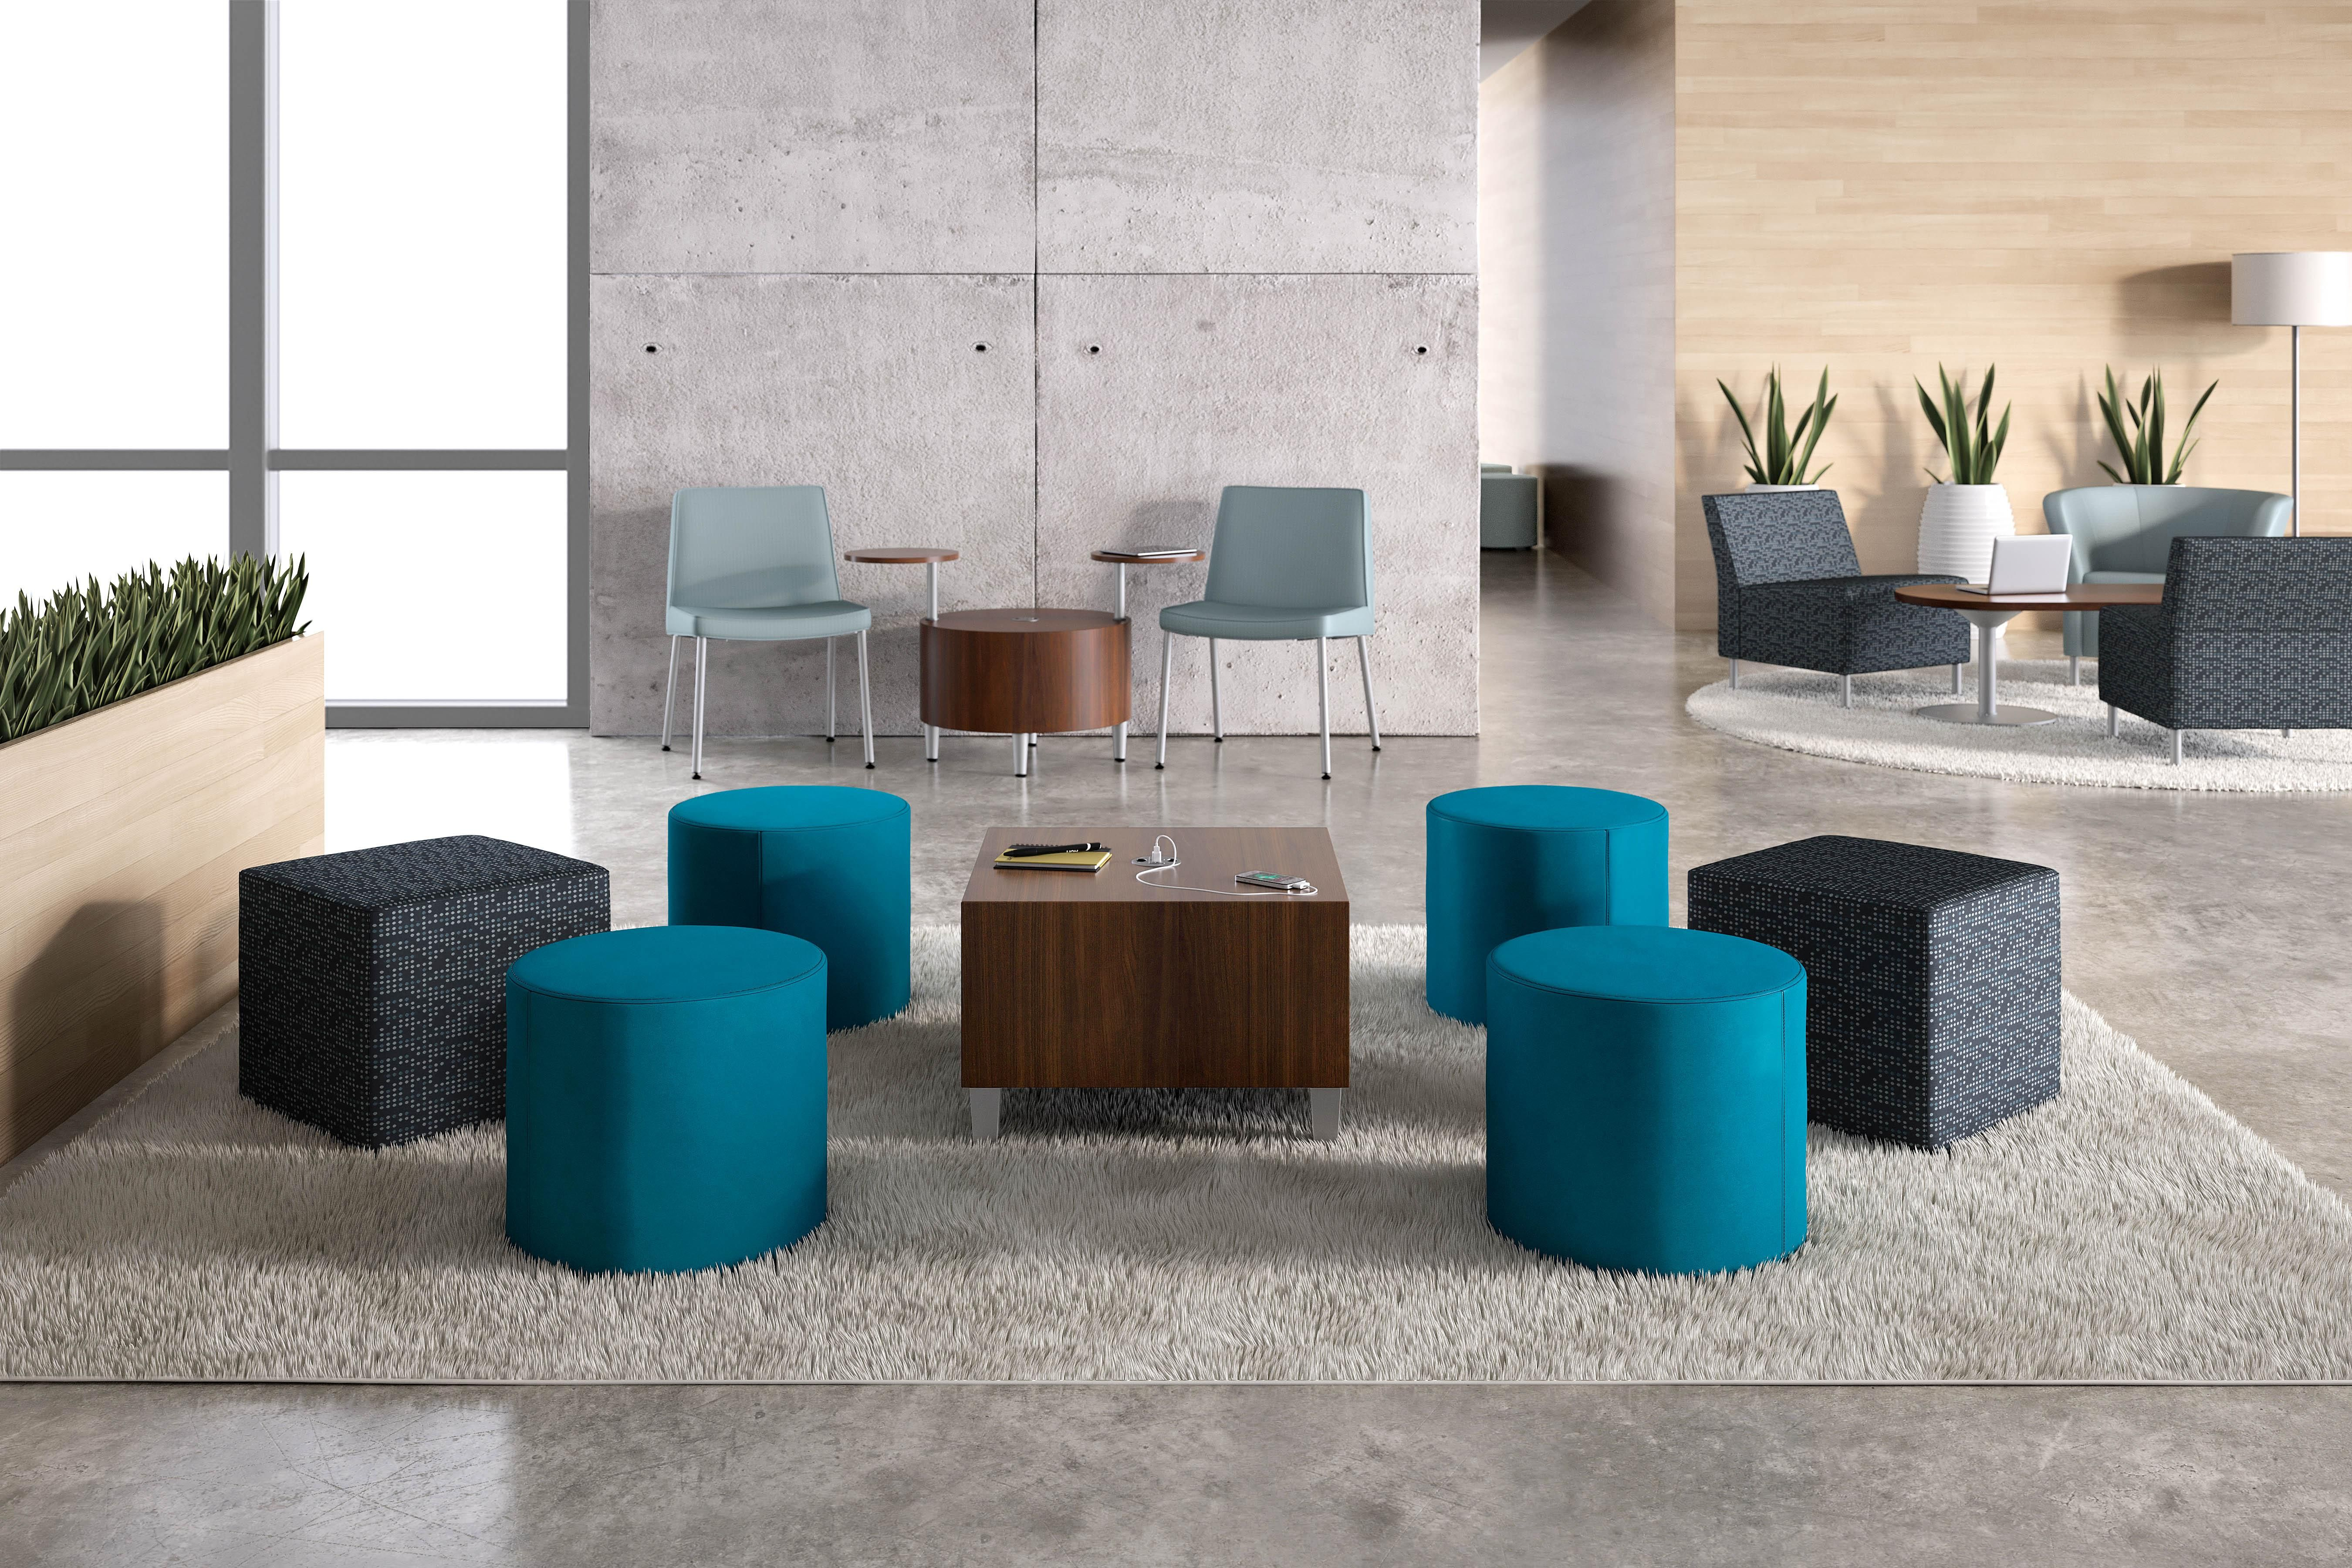 HON Flock Seating and Tables contract furniture